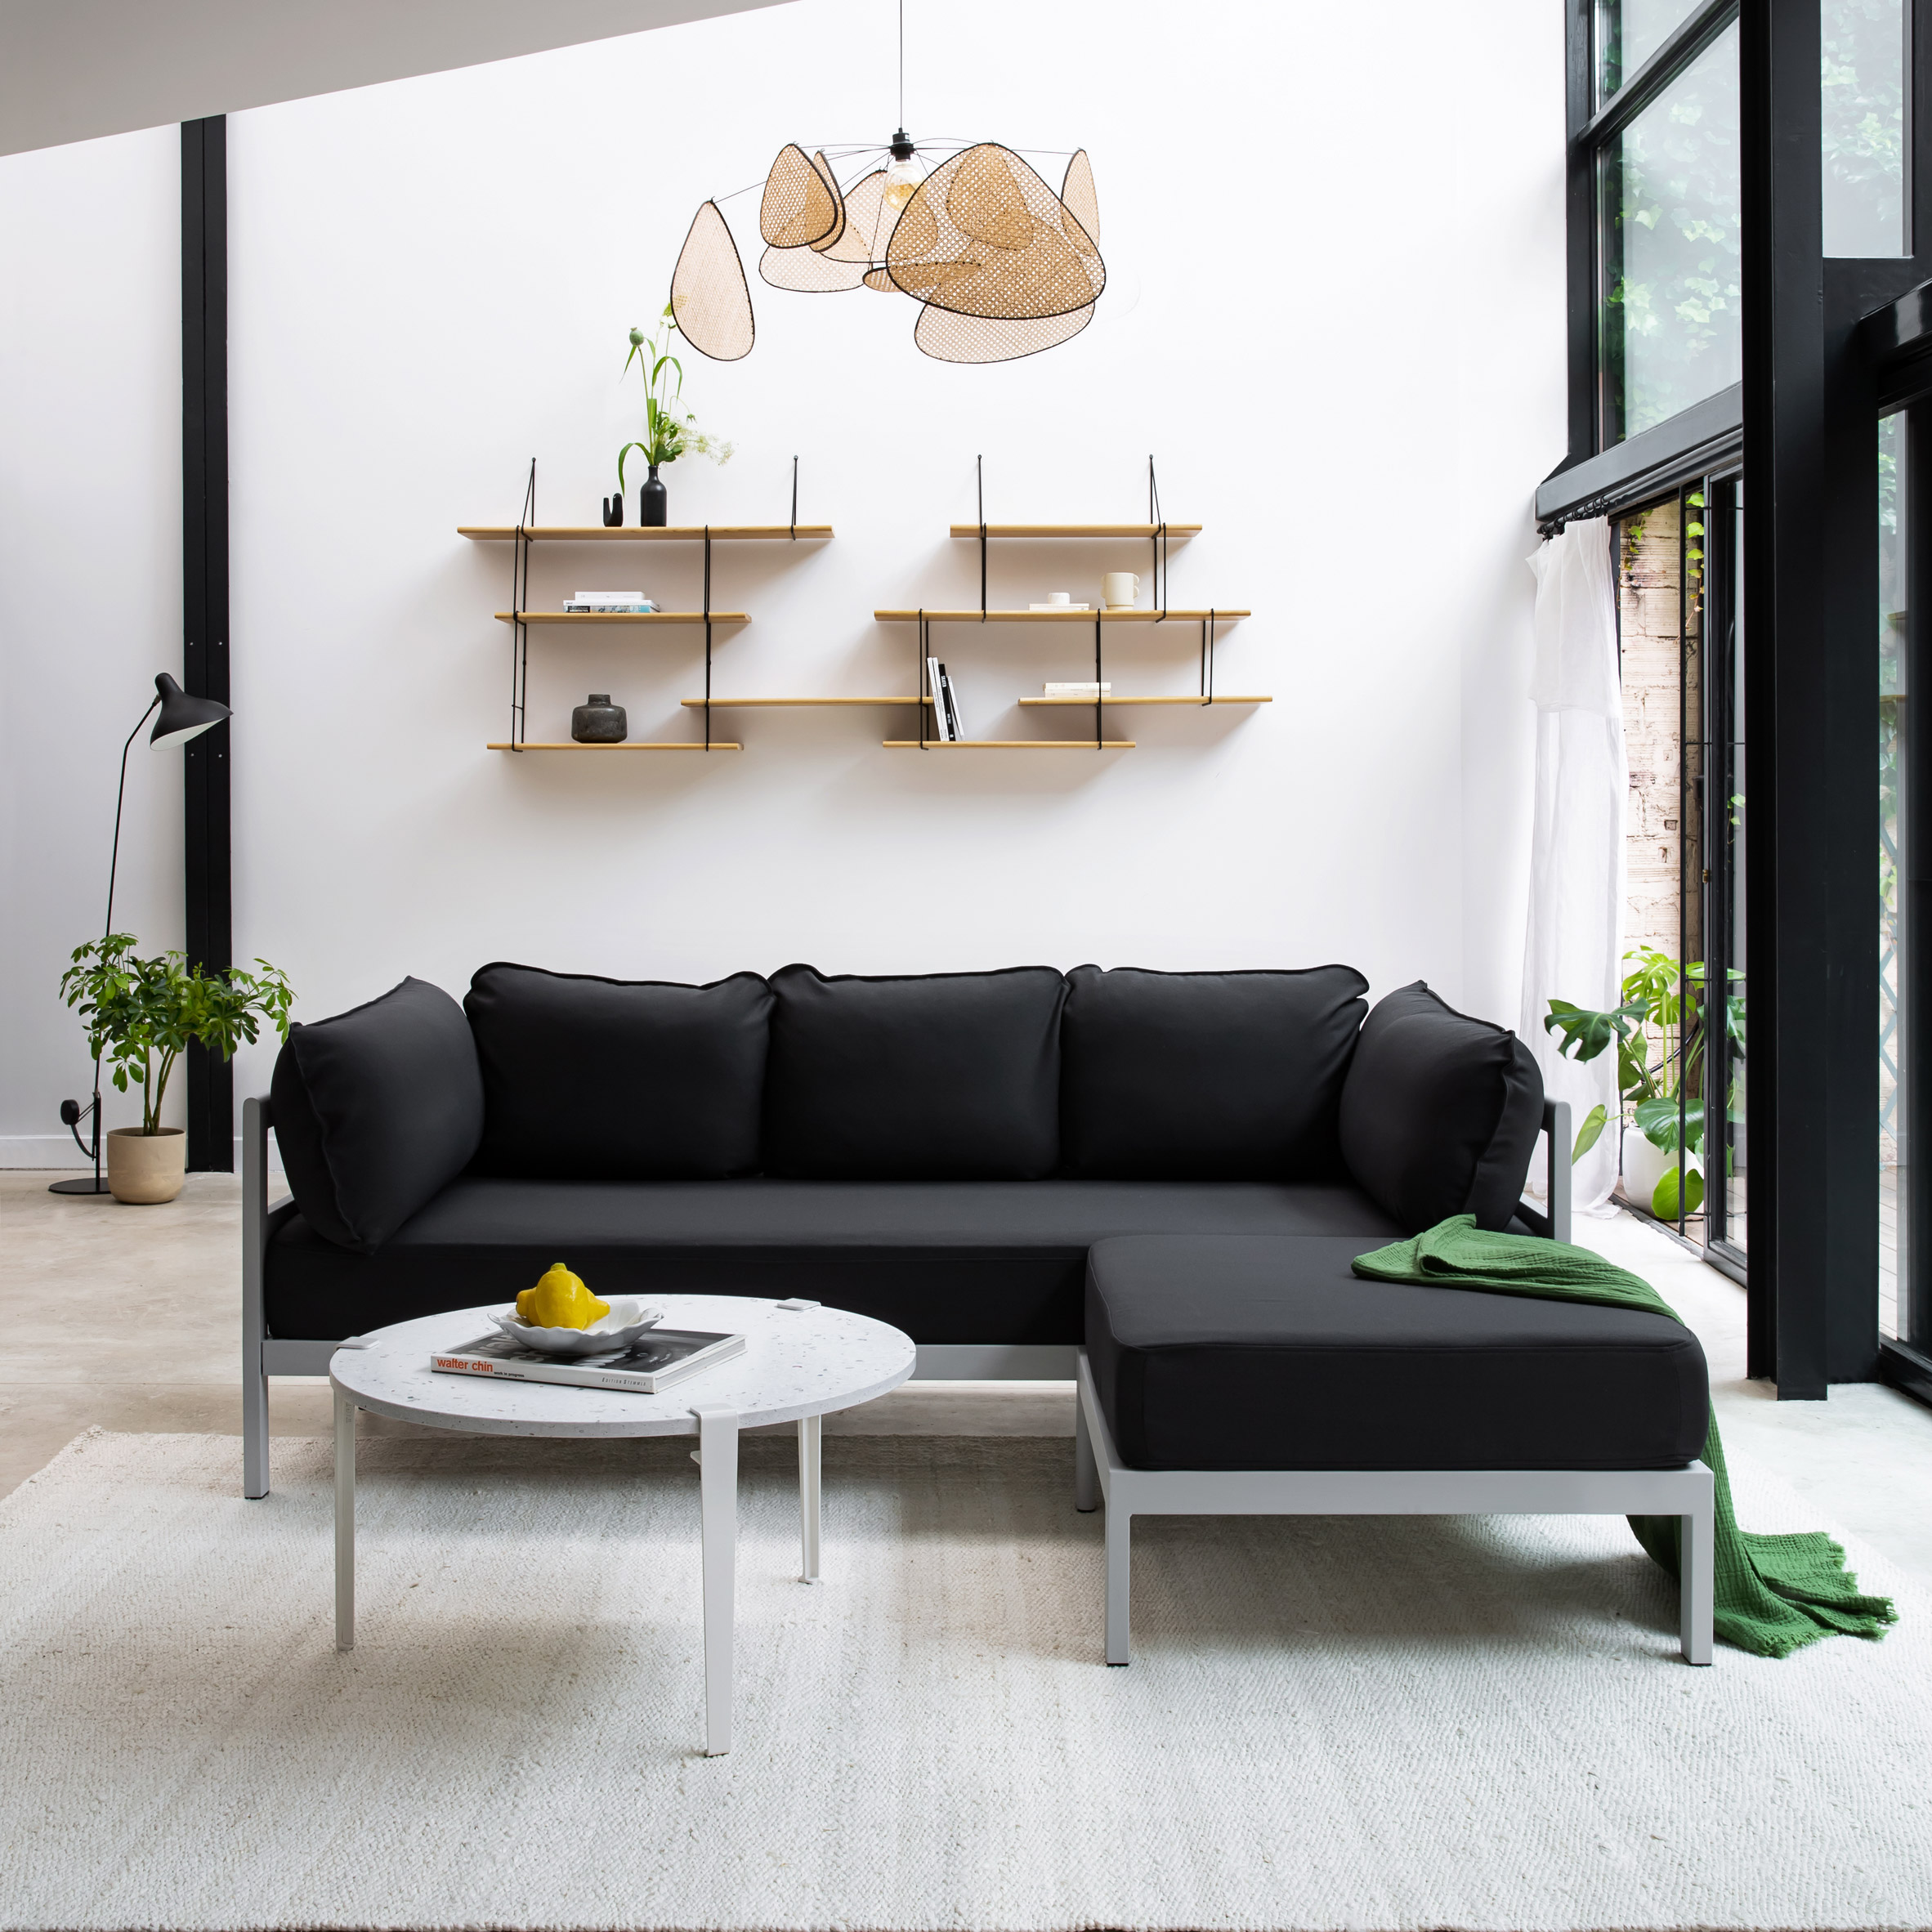 Easy sofa by Big-Game for Tiptoe